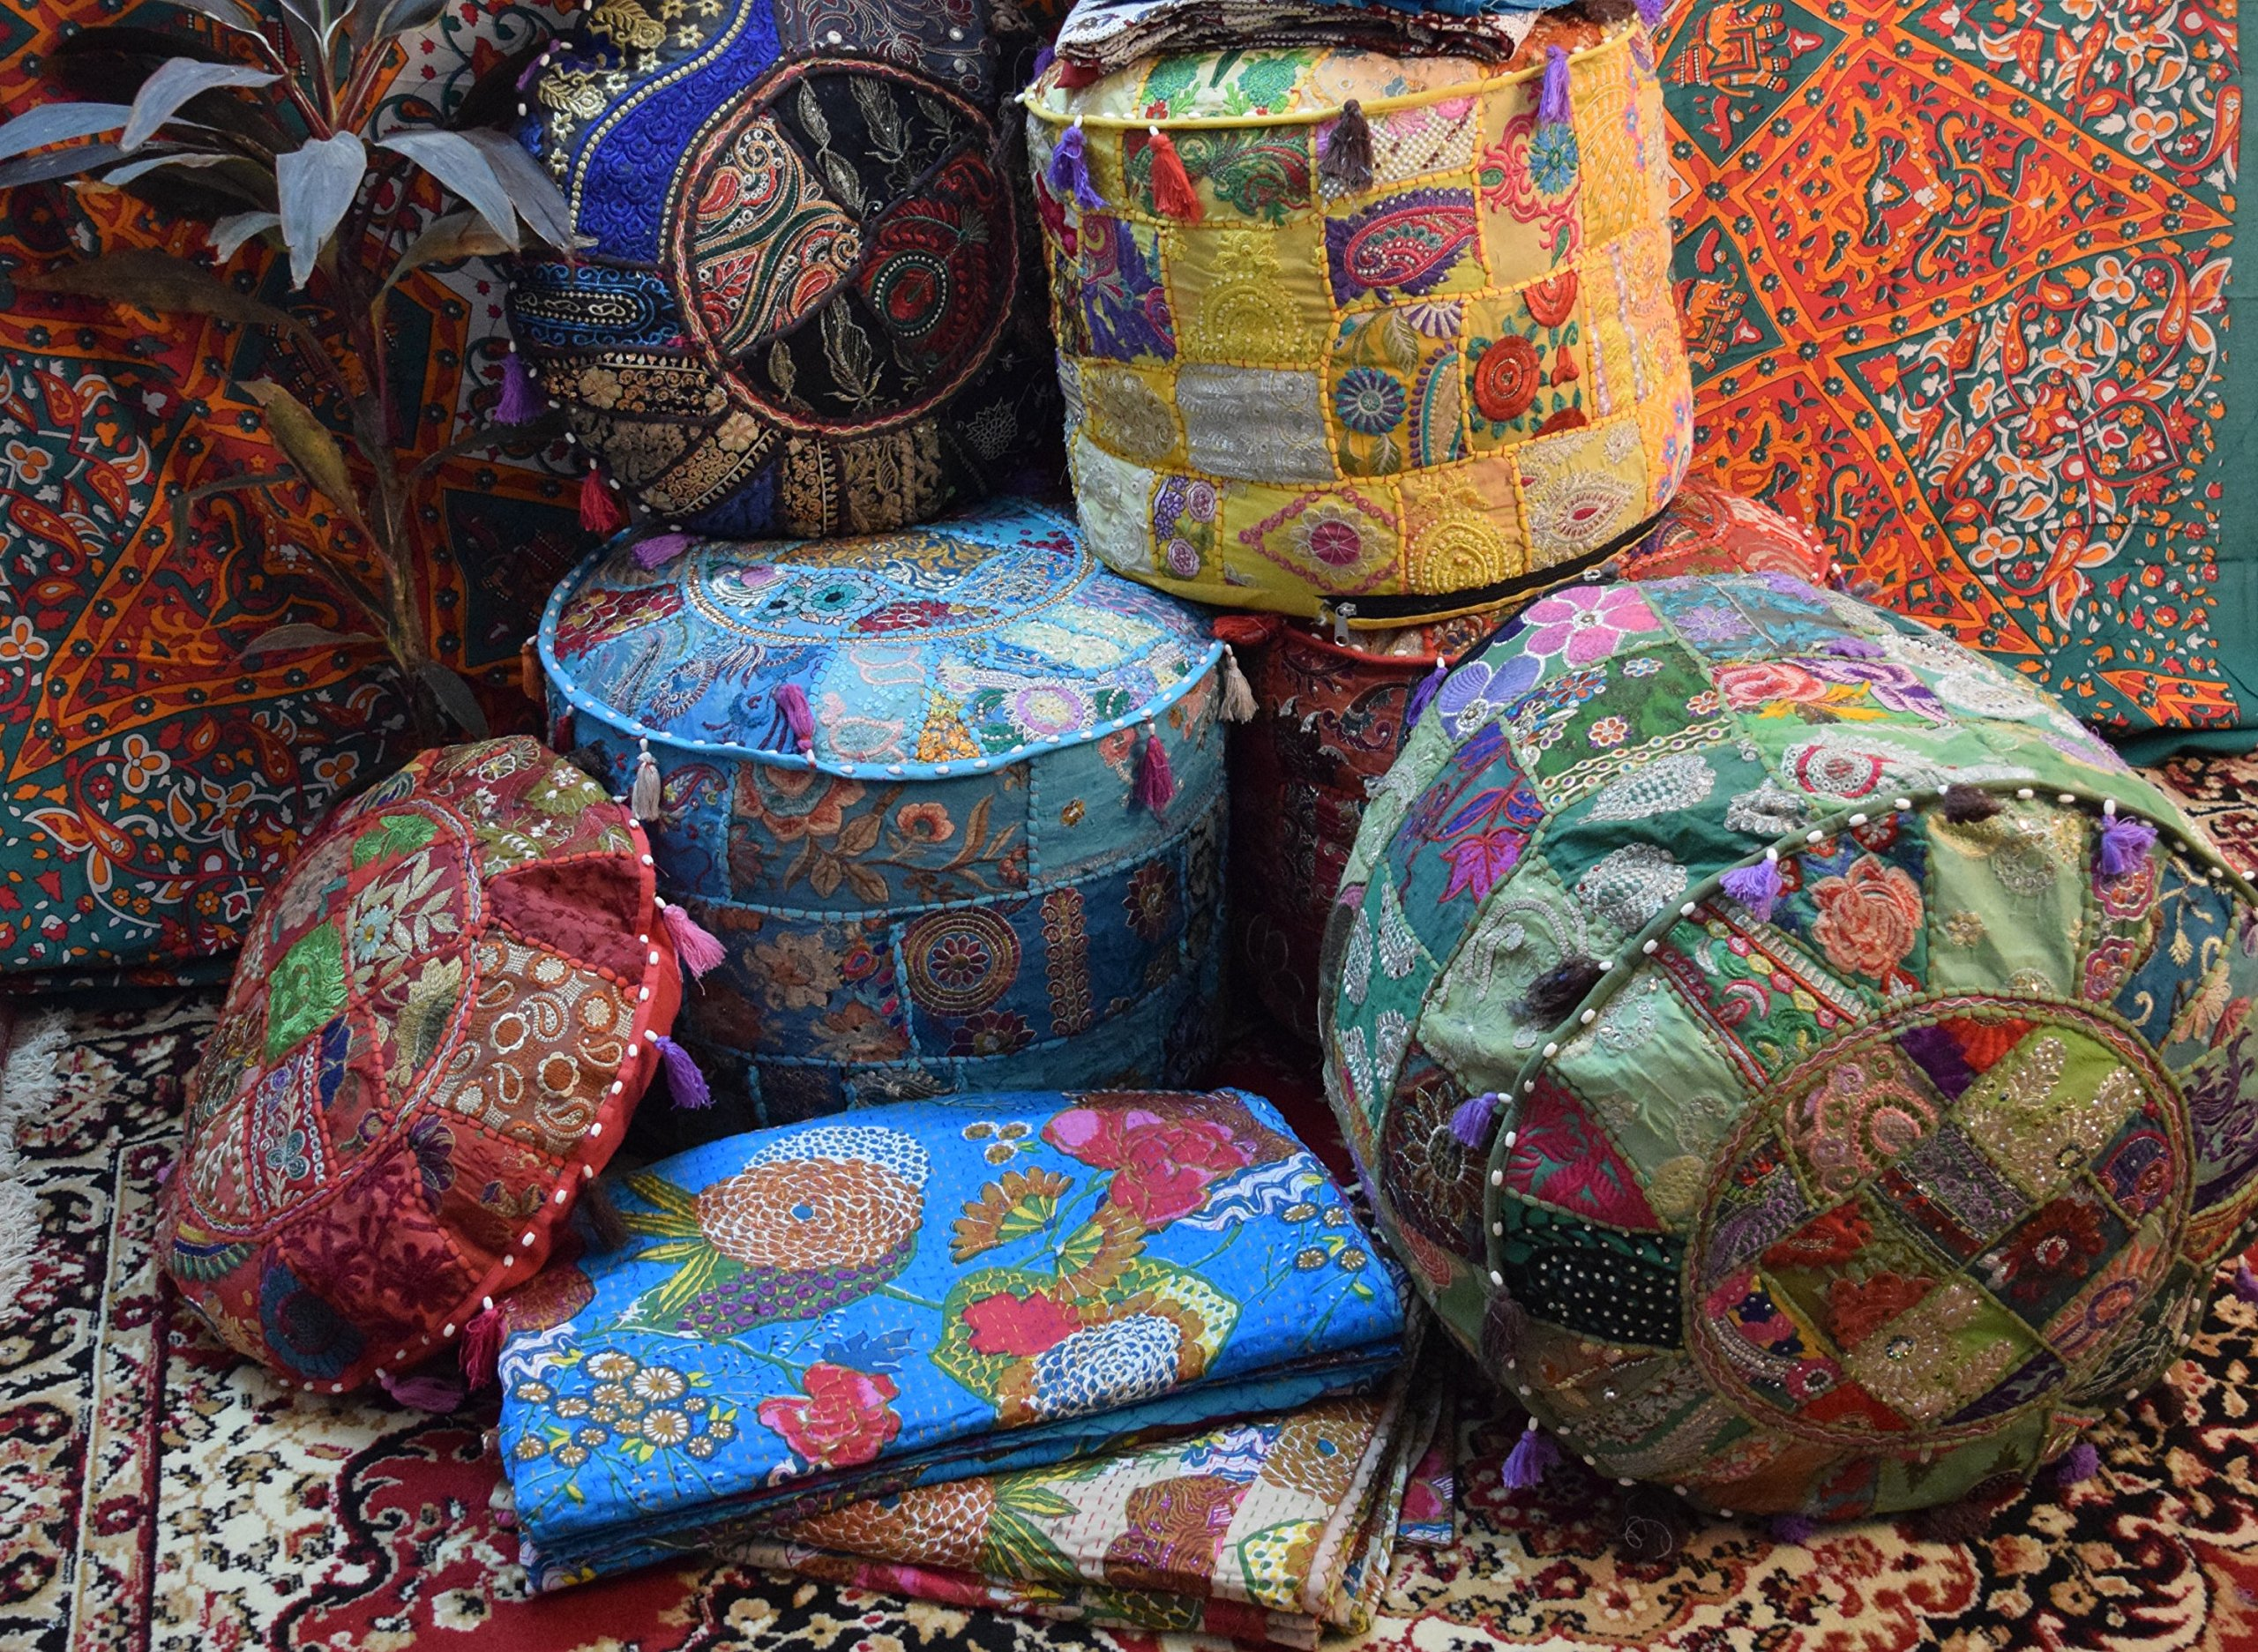 khushvin 5pc Indian Vintage Ottoman Pouf Cover Patchwork Ottoman, Decorative Handmade Home Chair Cover Living Room Patchwork Foot Stool Cover, 14x22x22 Inch.